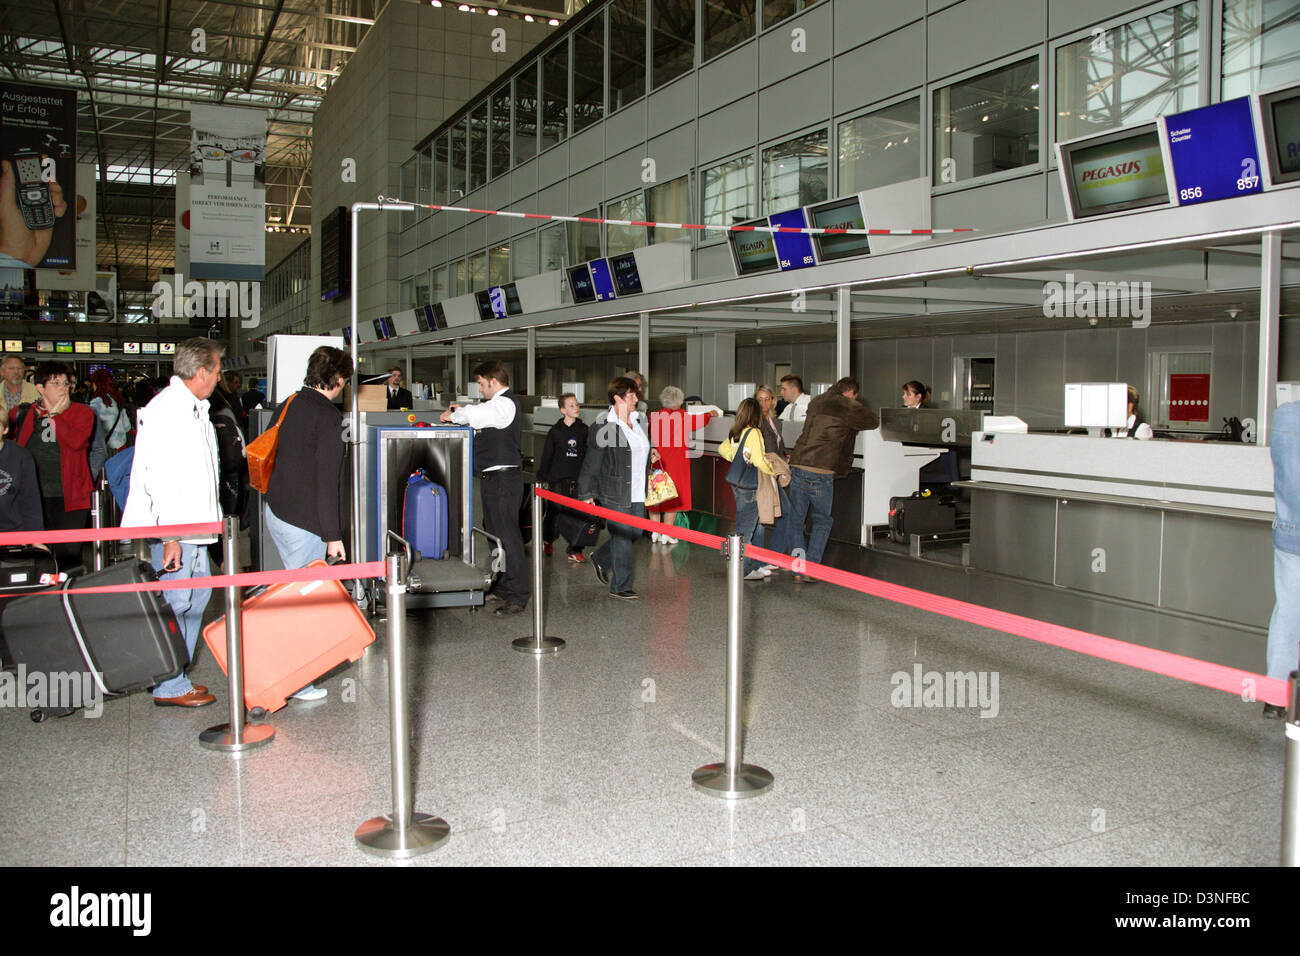 (dpa files) - Passengers have their luggage x-rayed prior to the check-in at the Terminal 2 of the Frankfurt Airport - Stock Image